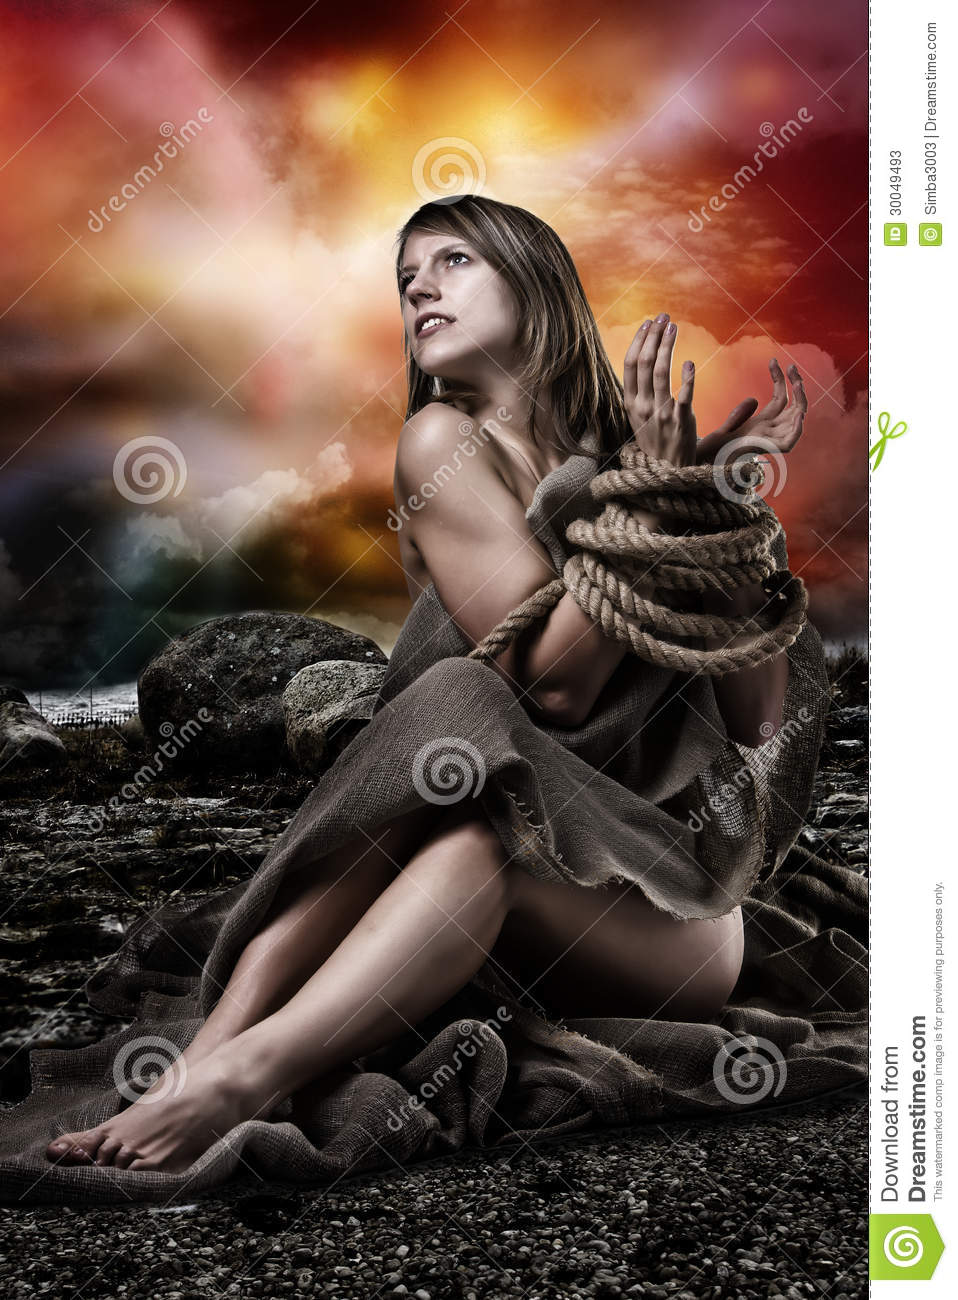 Women tied up with rope